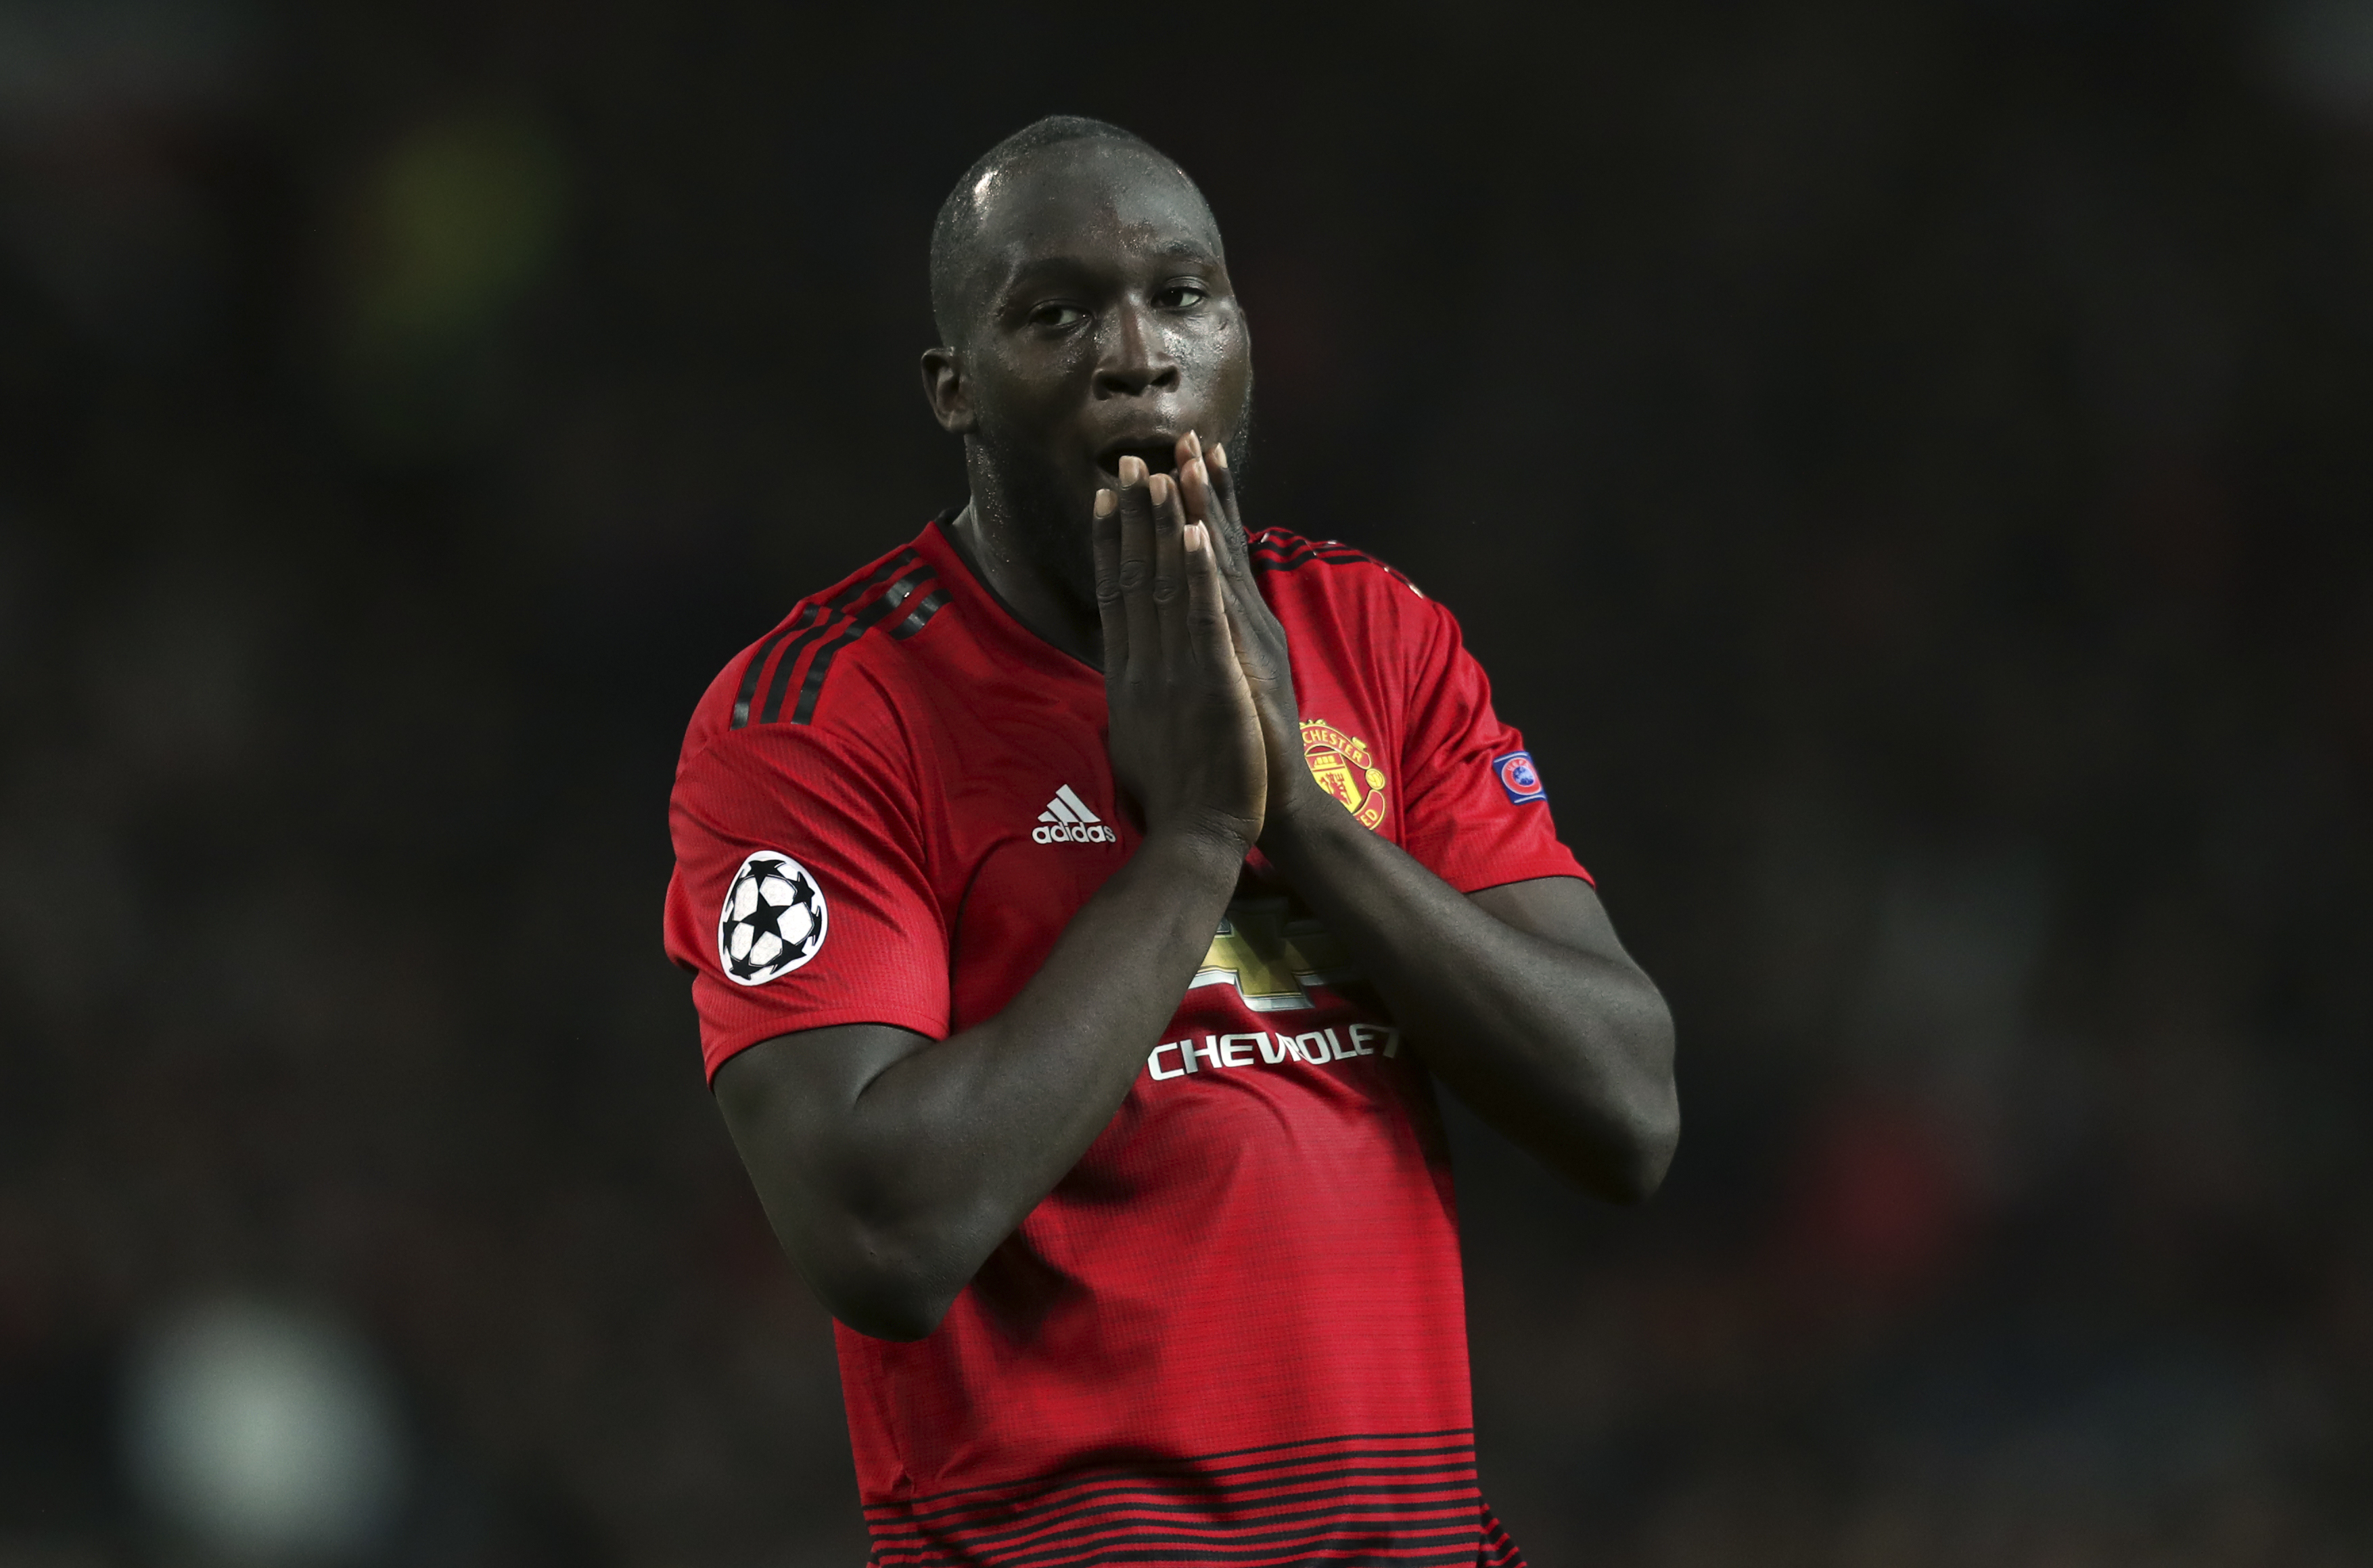 United stutters to 0-0 draw vs Valencia after arriving late